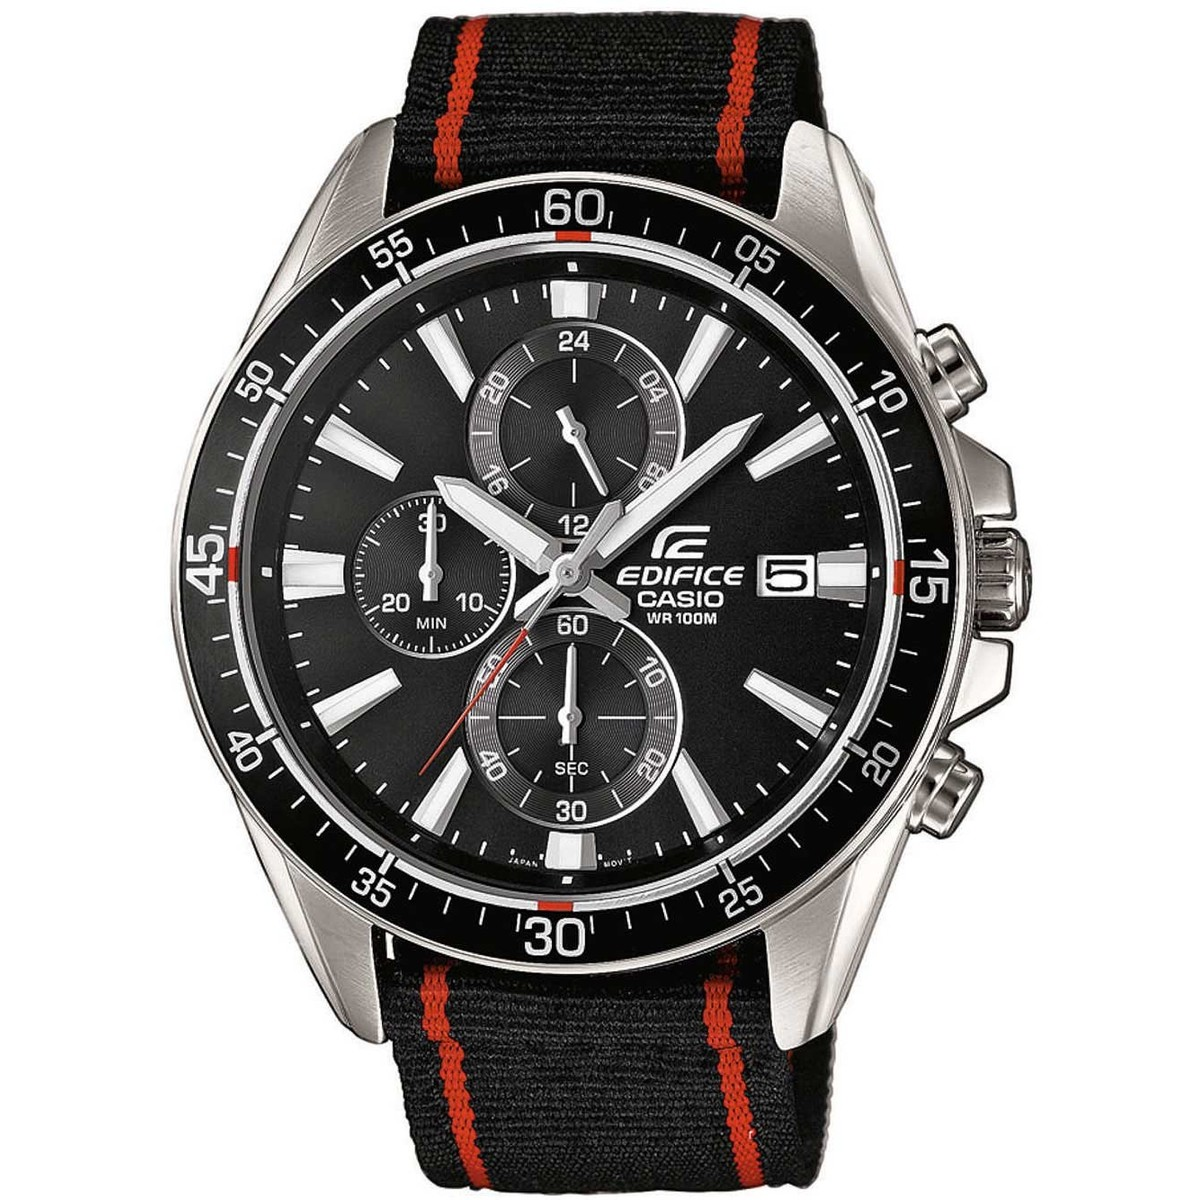 Ceas barbatesc Casio Edifice EFR-546C-1AVUEF original de mana